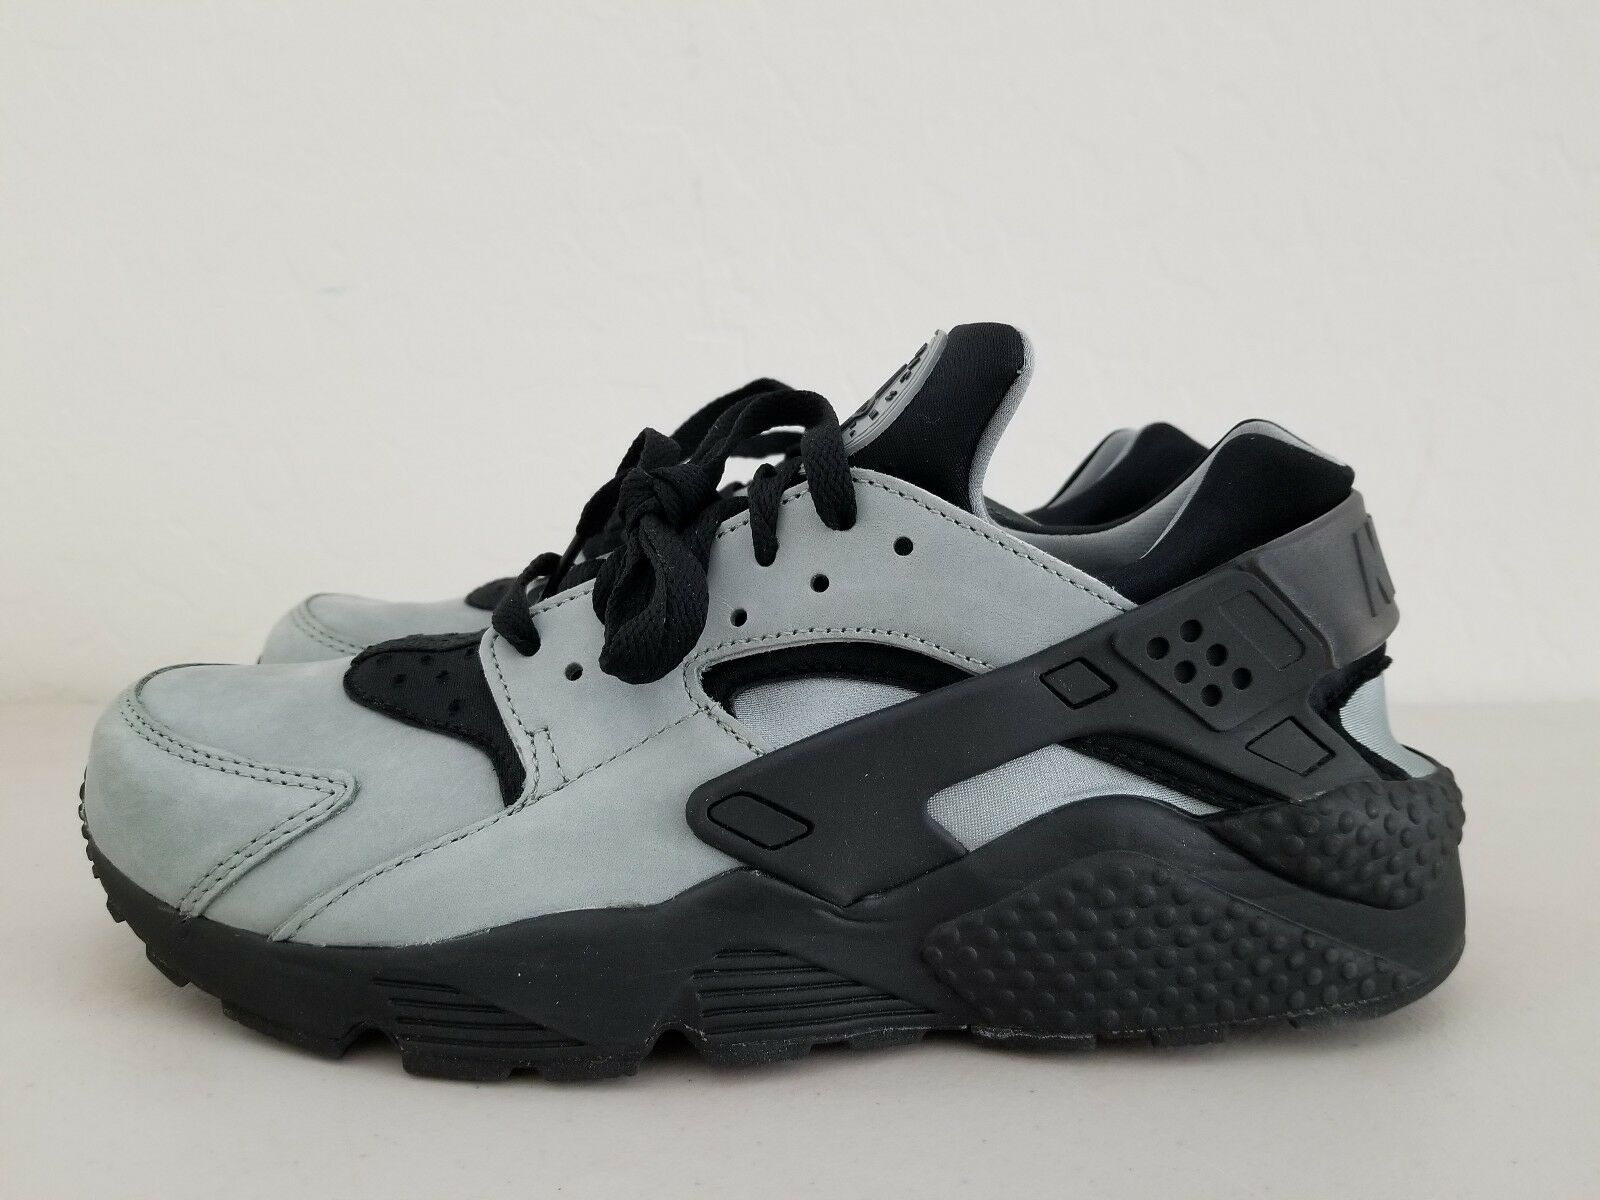 NIKE AIR HUARACHE RUN PRM PREMIUM MICA GREEN-BLACK 704830-301